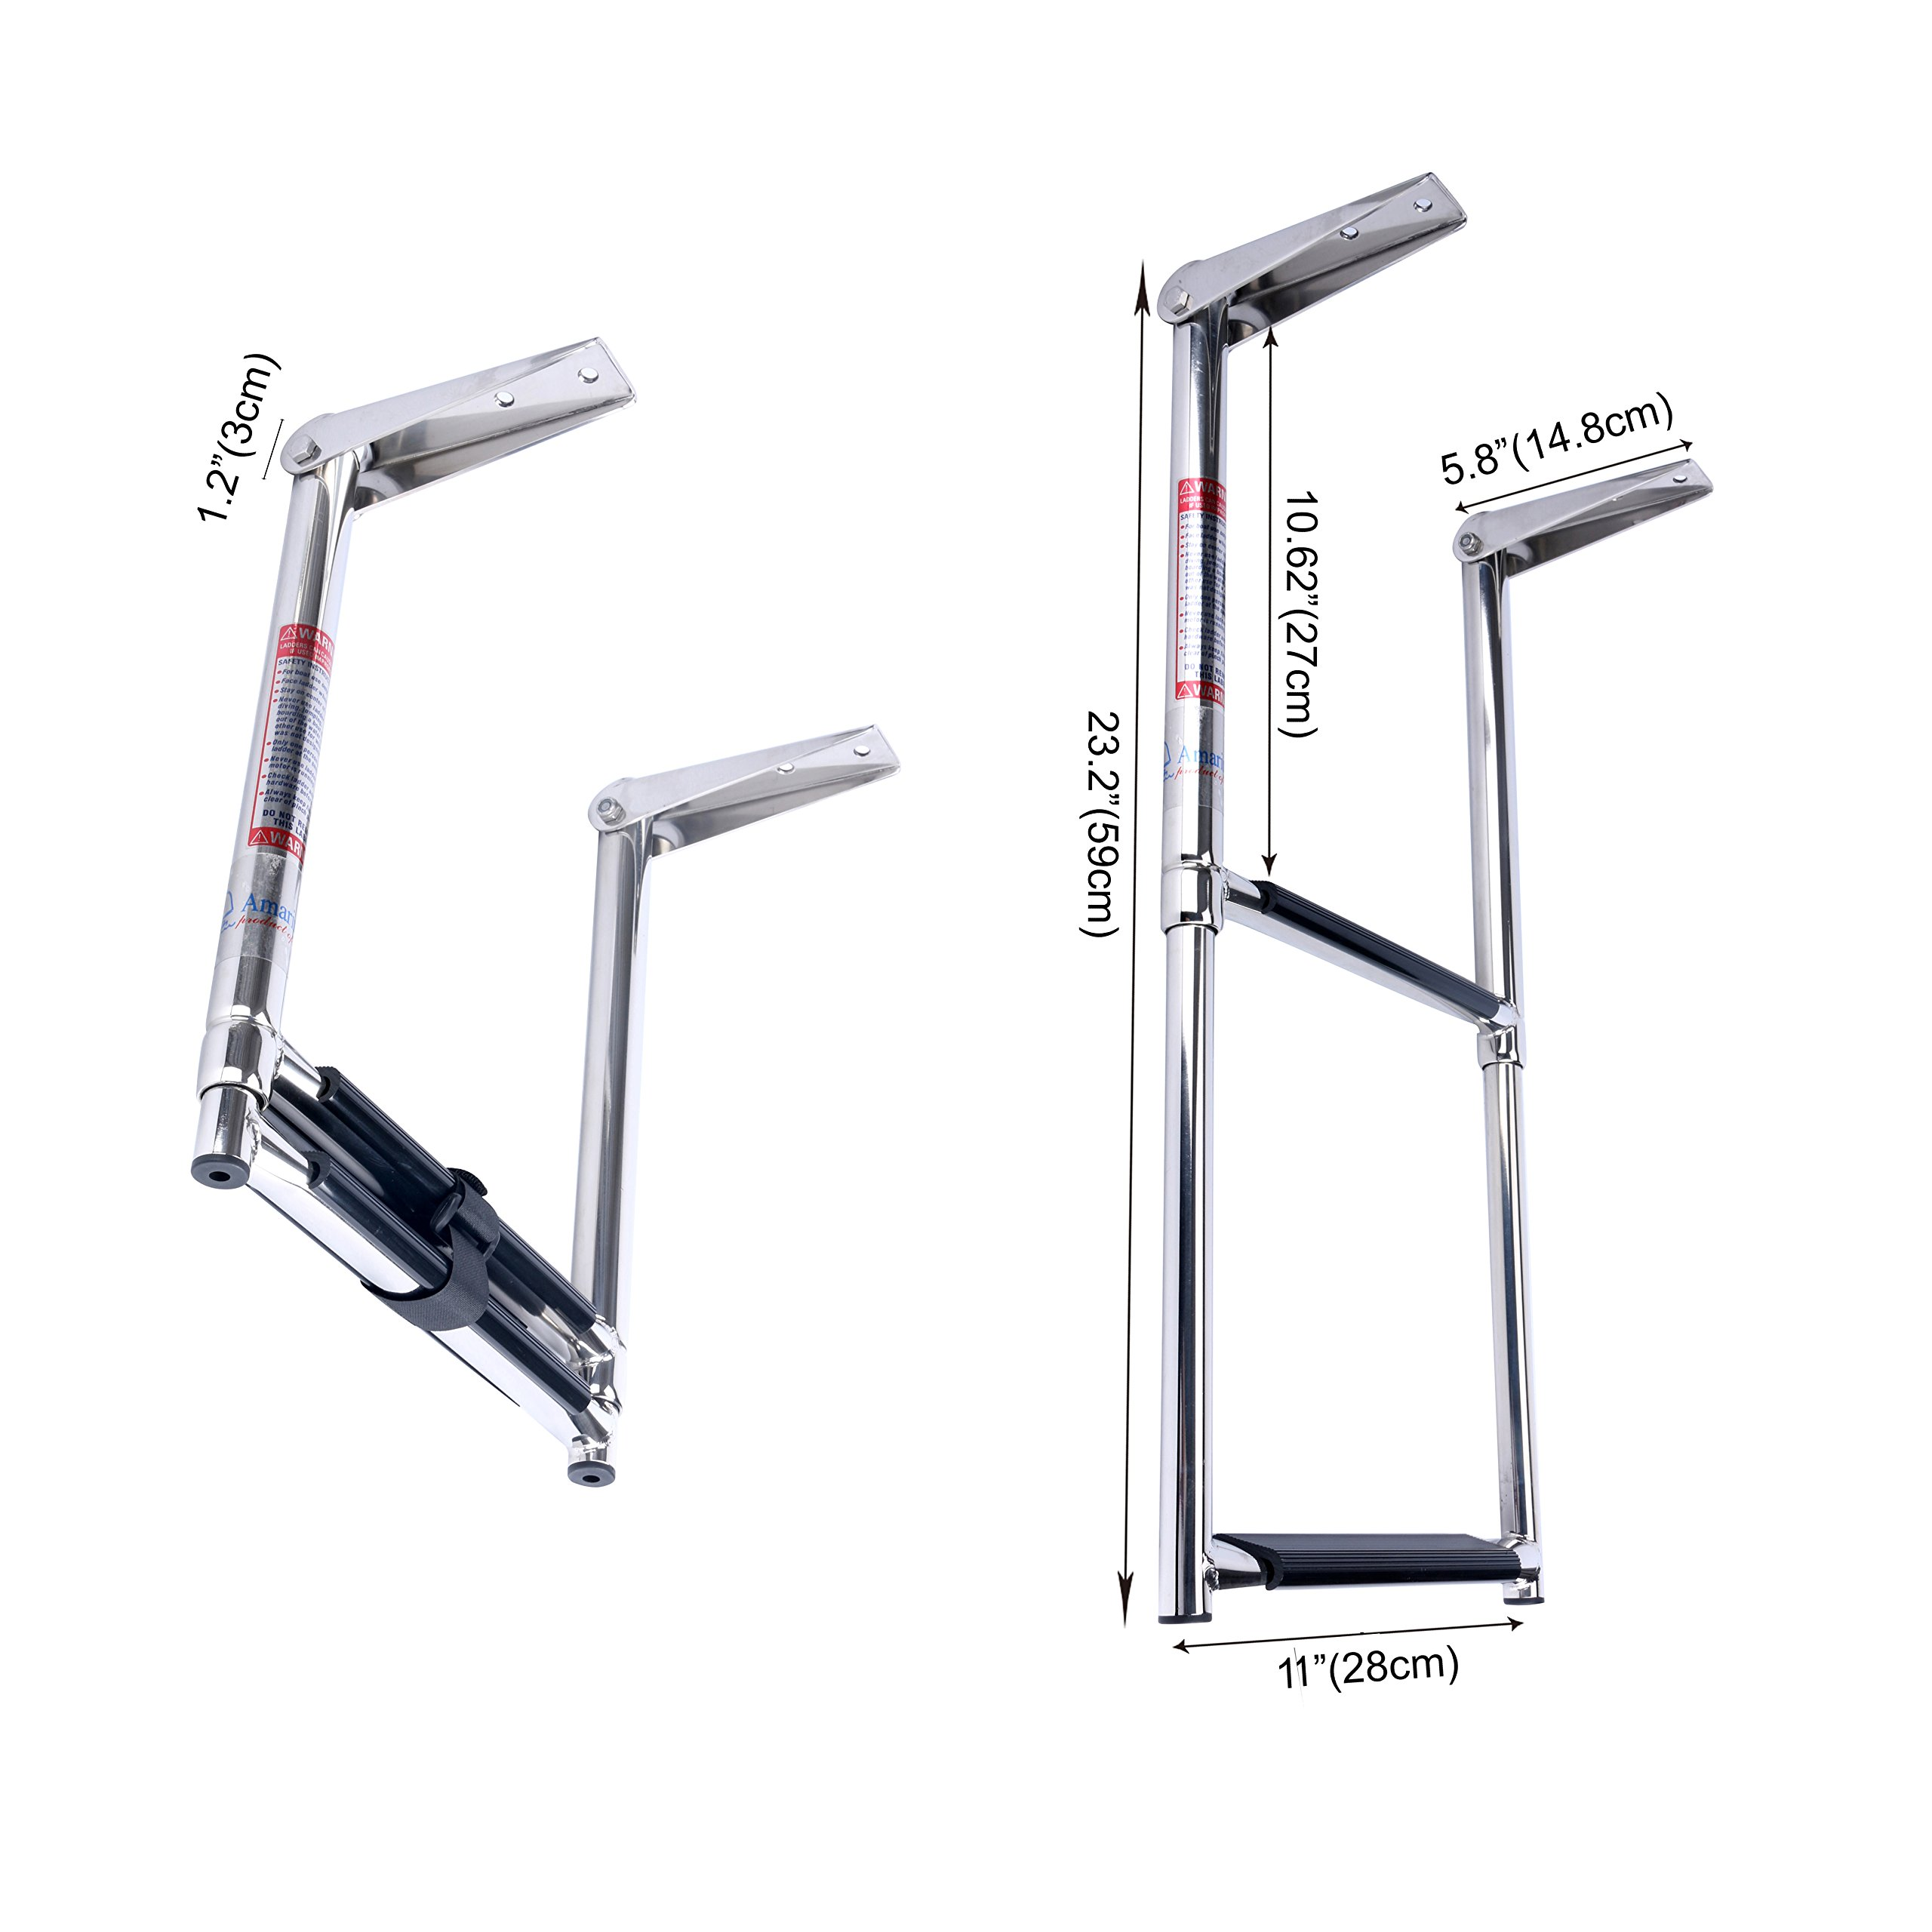 Amarine-made Stainless Steel Telescoping Boat Ladder, 2 Step